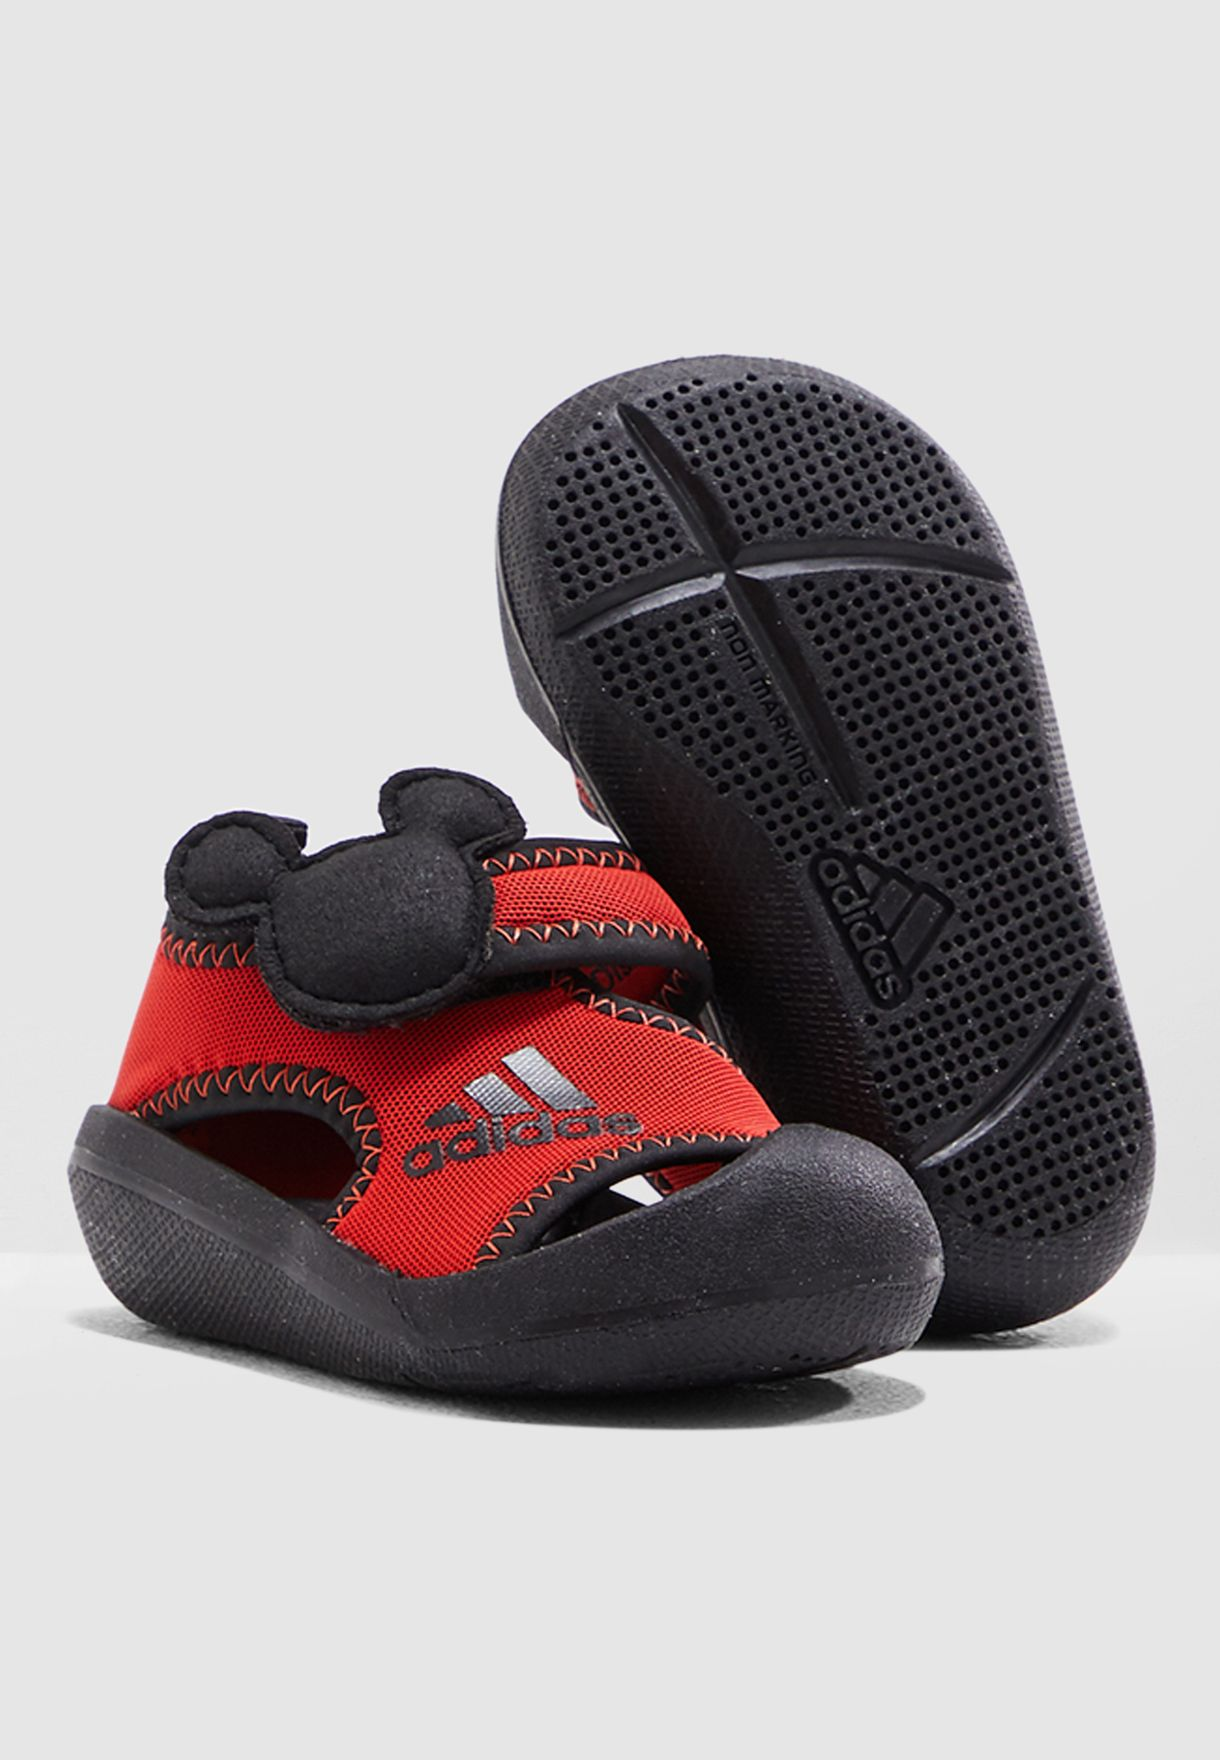 Adidas ALTAVENTURE MICKEY SHOES 9 12K Toddler Boutique